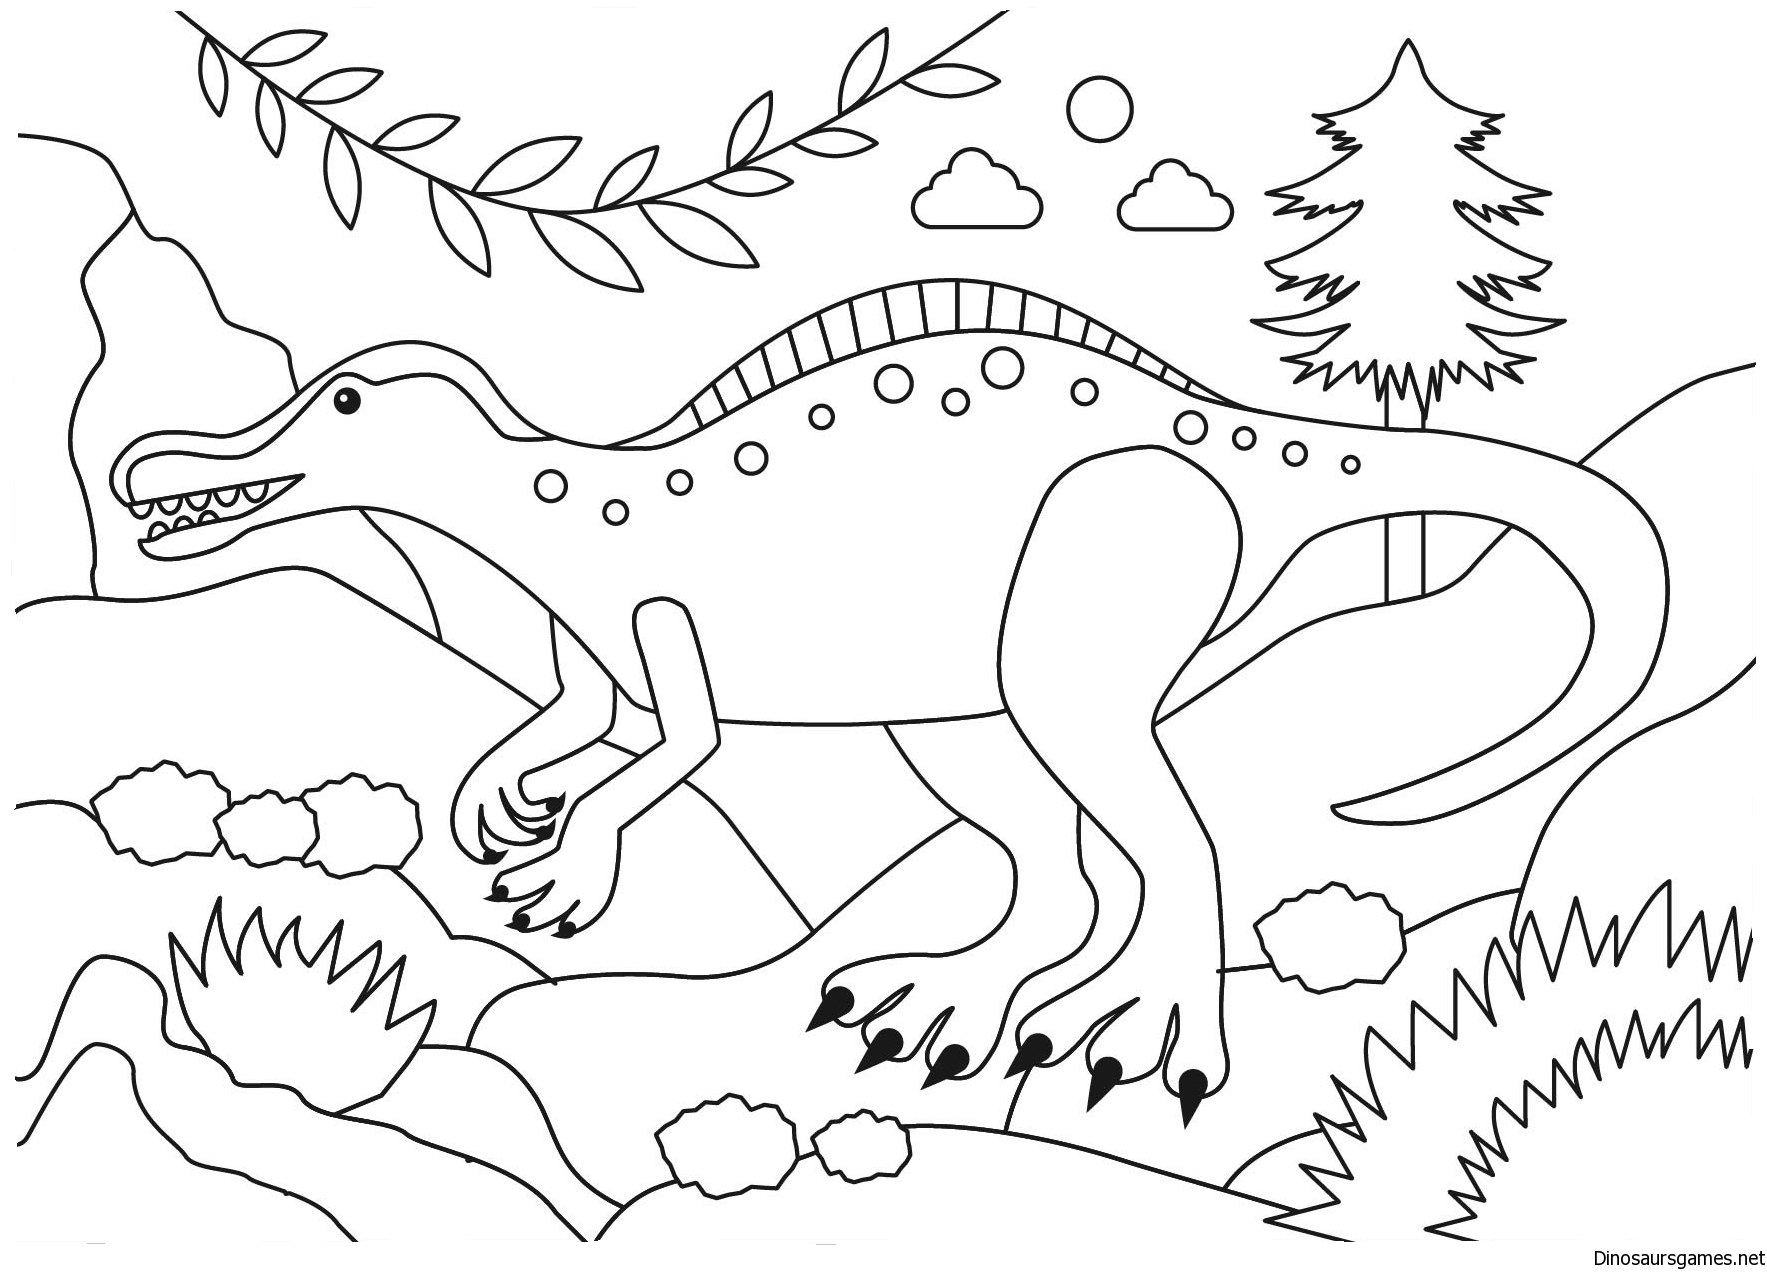 image free download Suchomimus Dinosaur Coloring Page.